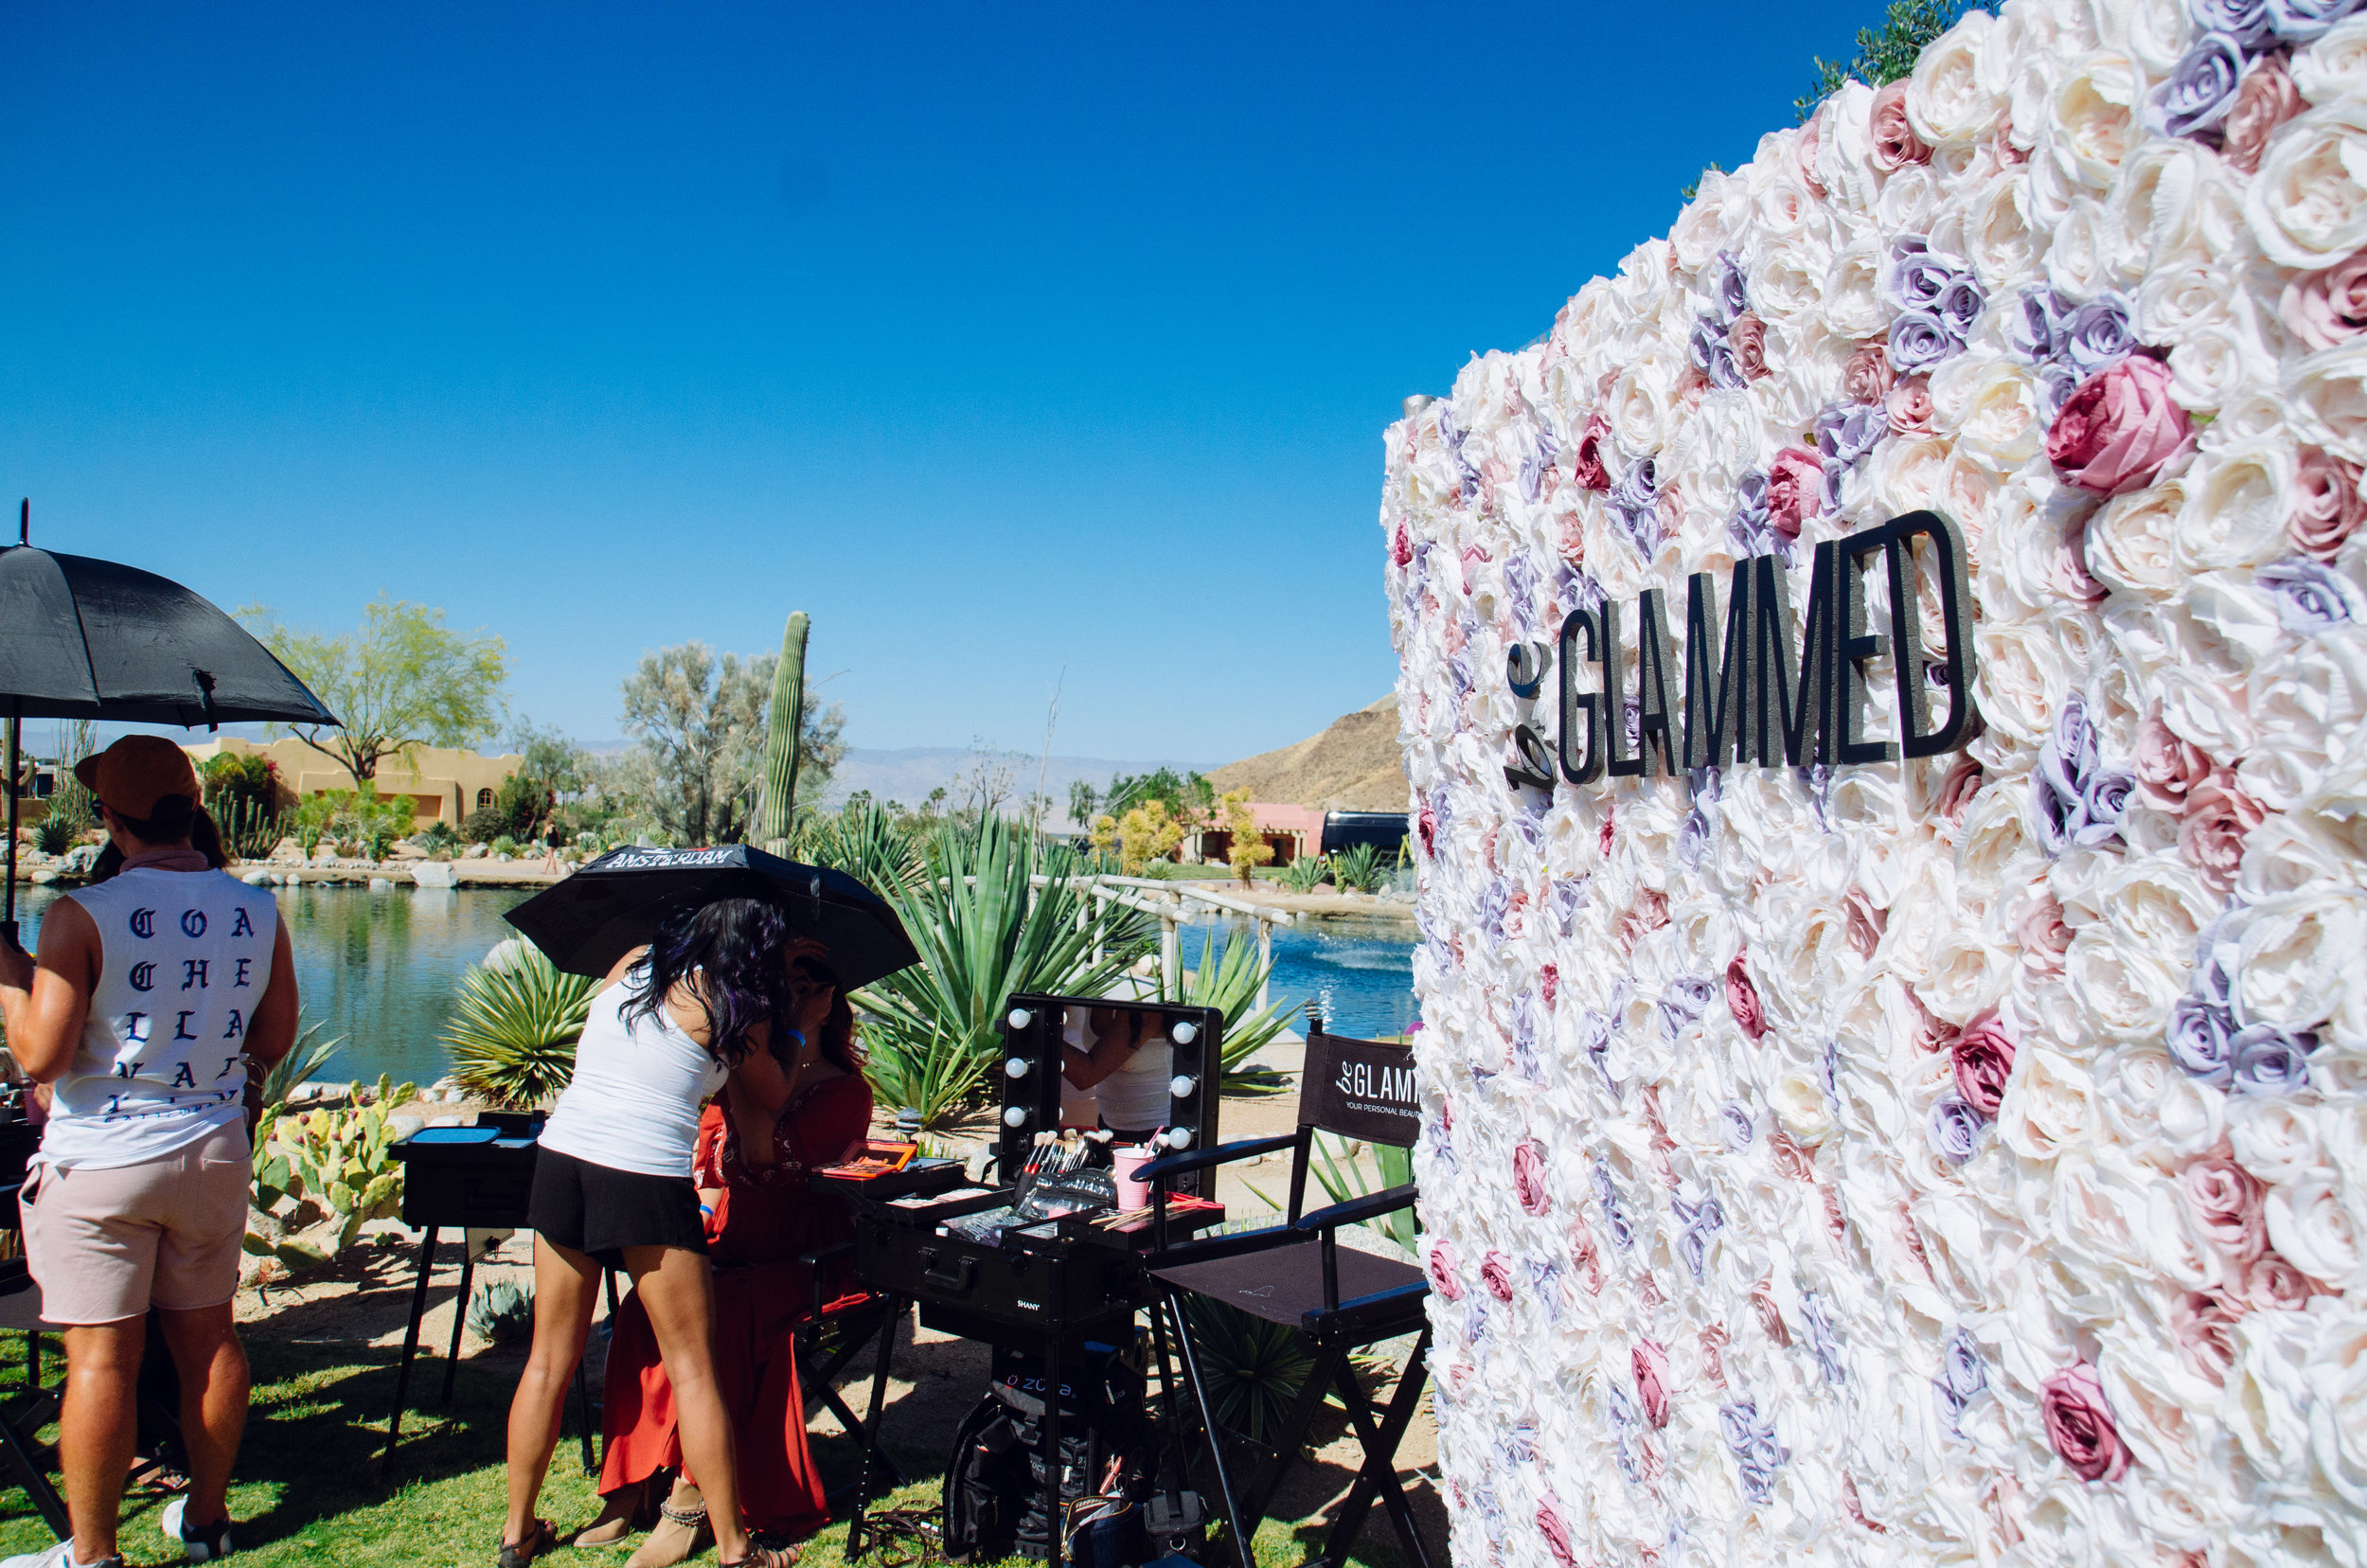 Ultimate Hollywood Coachella Poolside Party beGlammed rose wall.jpg